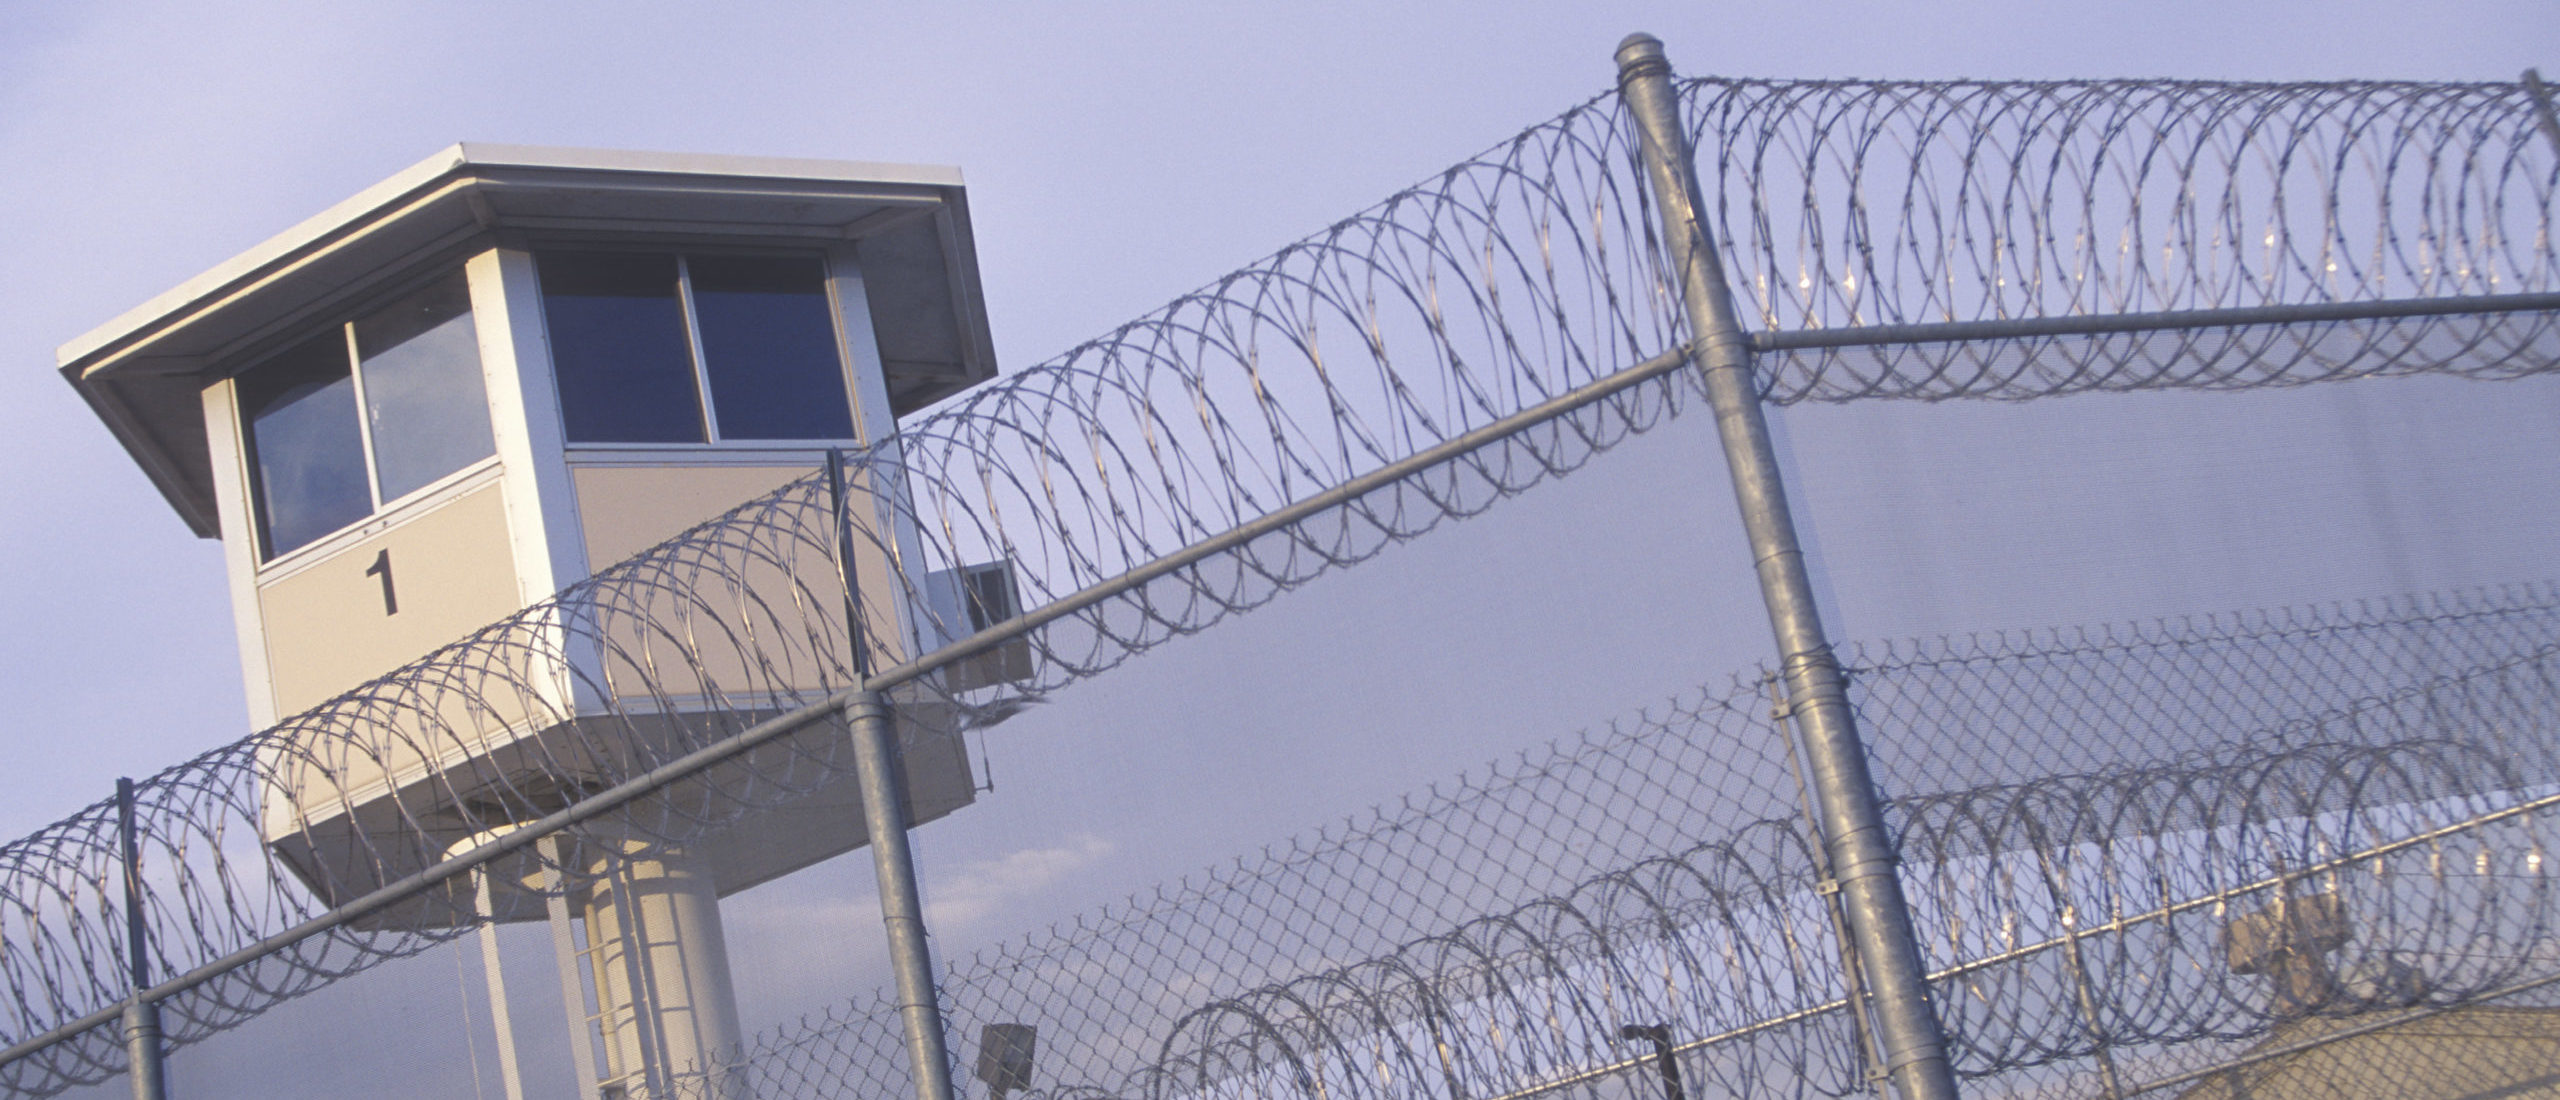 Watch tower at a CA State Prison by Joseph Sohm. Shutterstock.